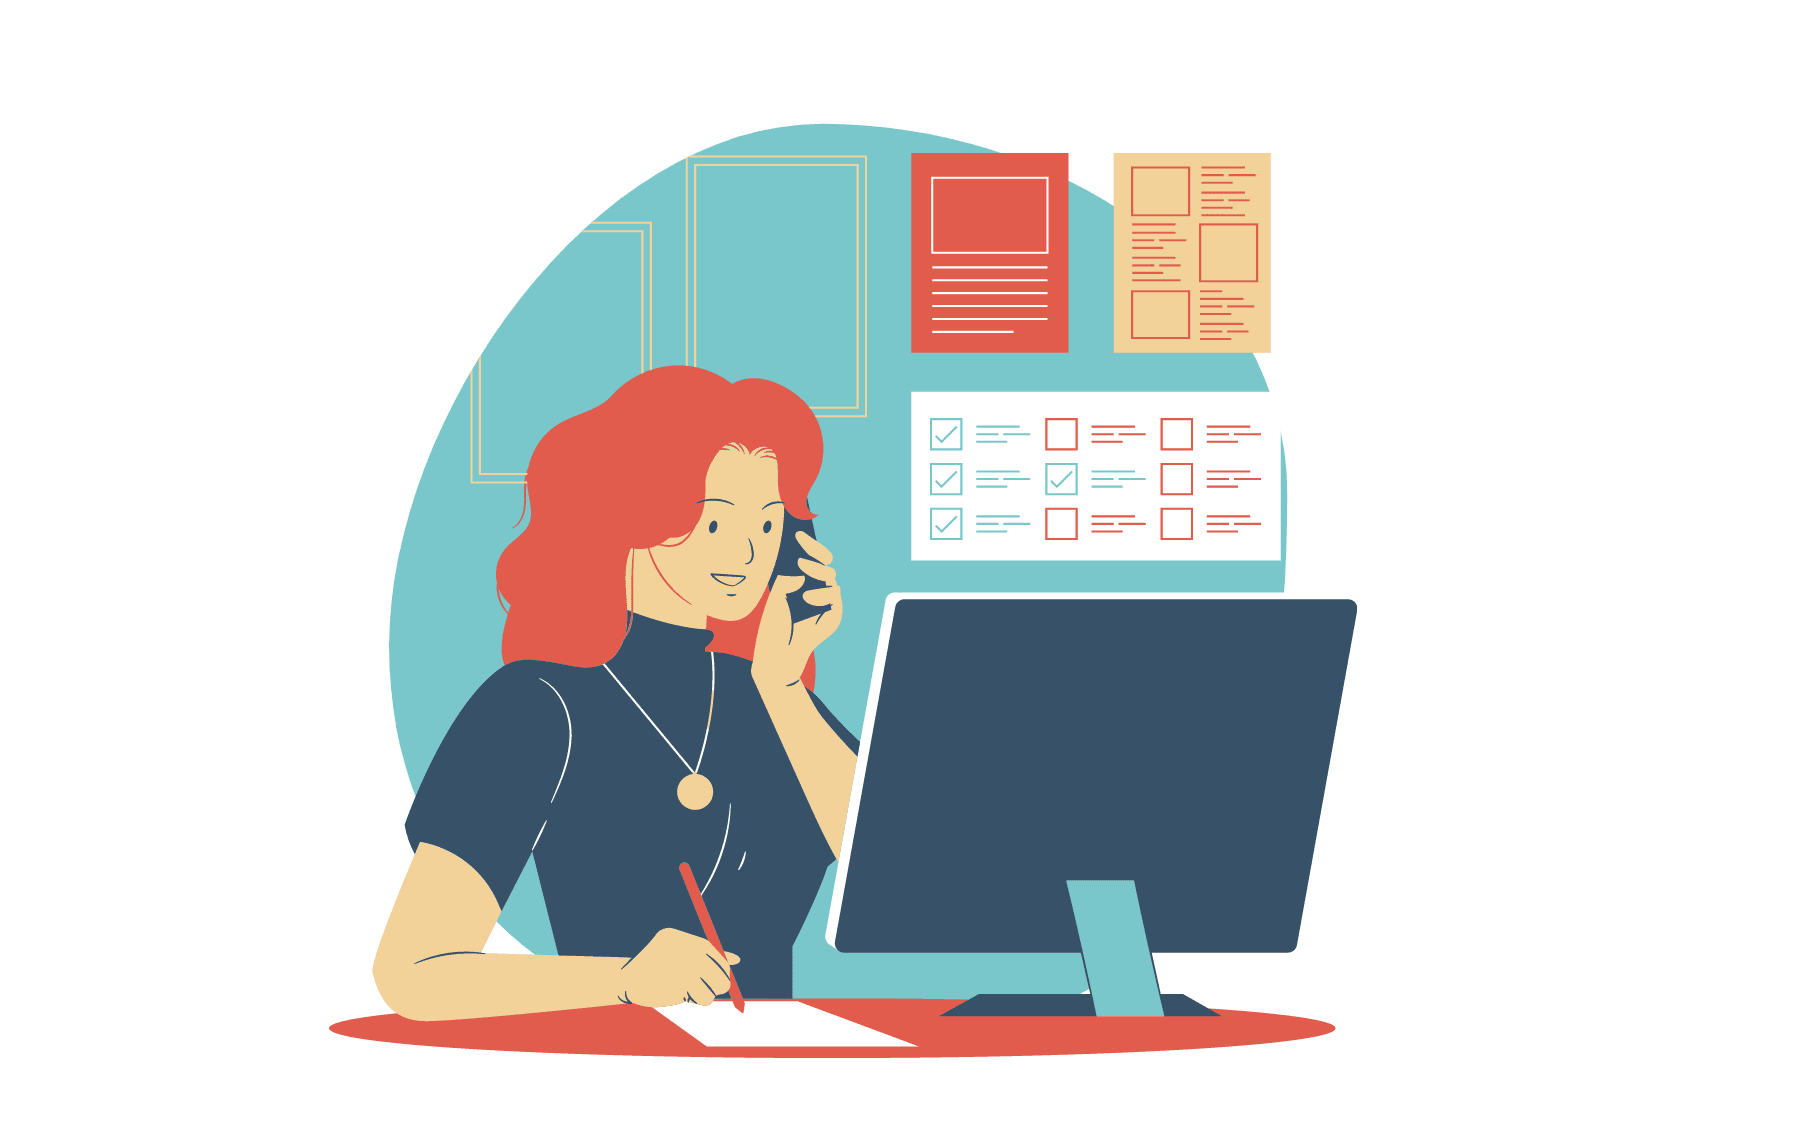 Challenge 2: Collaborative communication is difficult for remote teams.